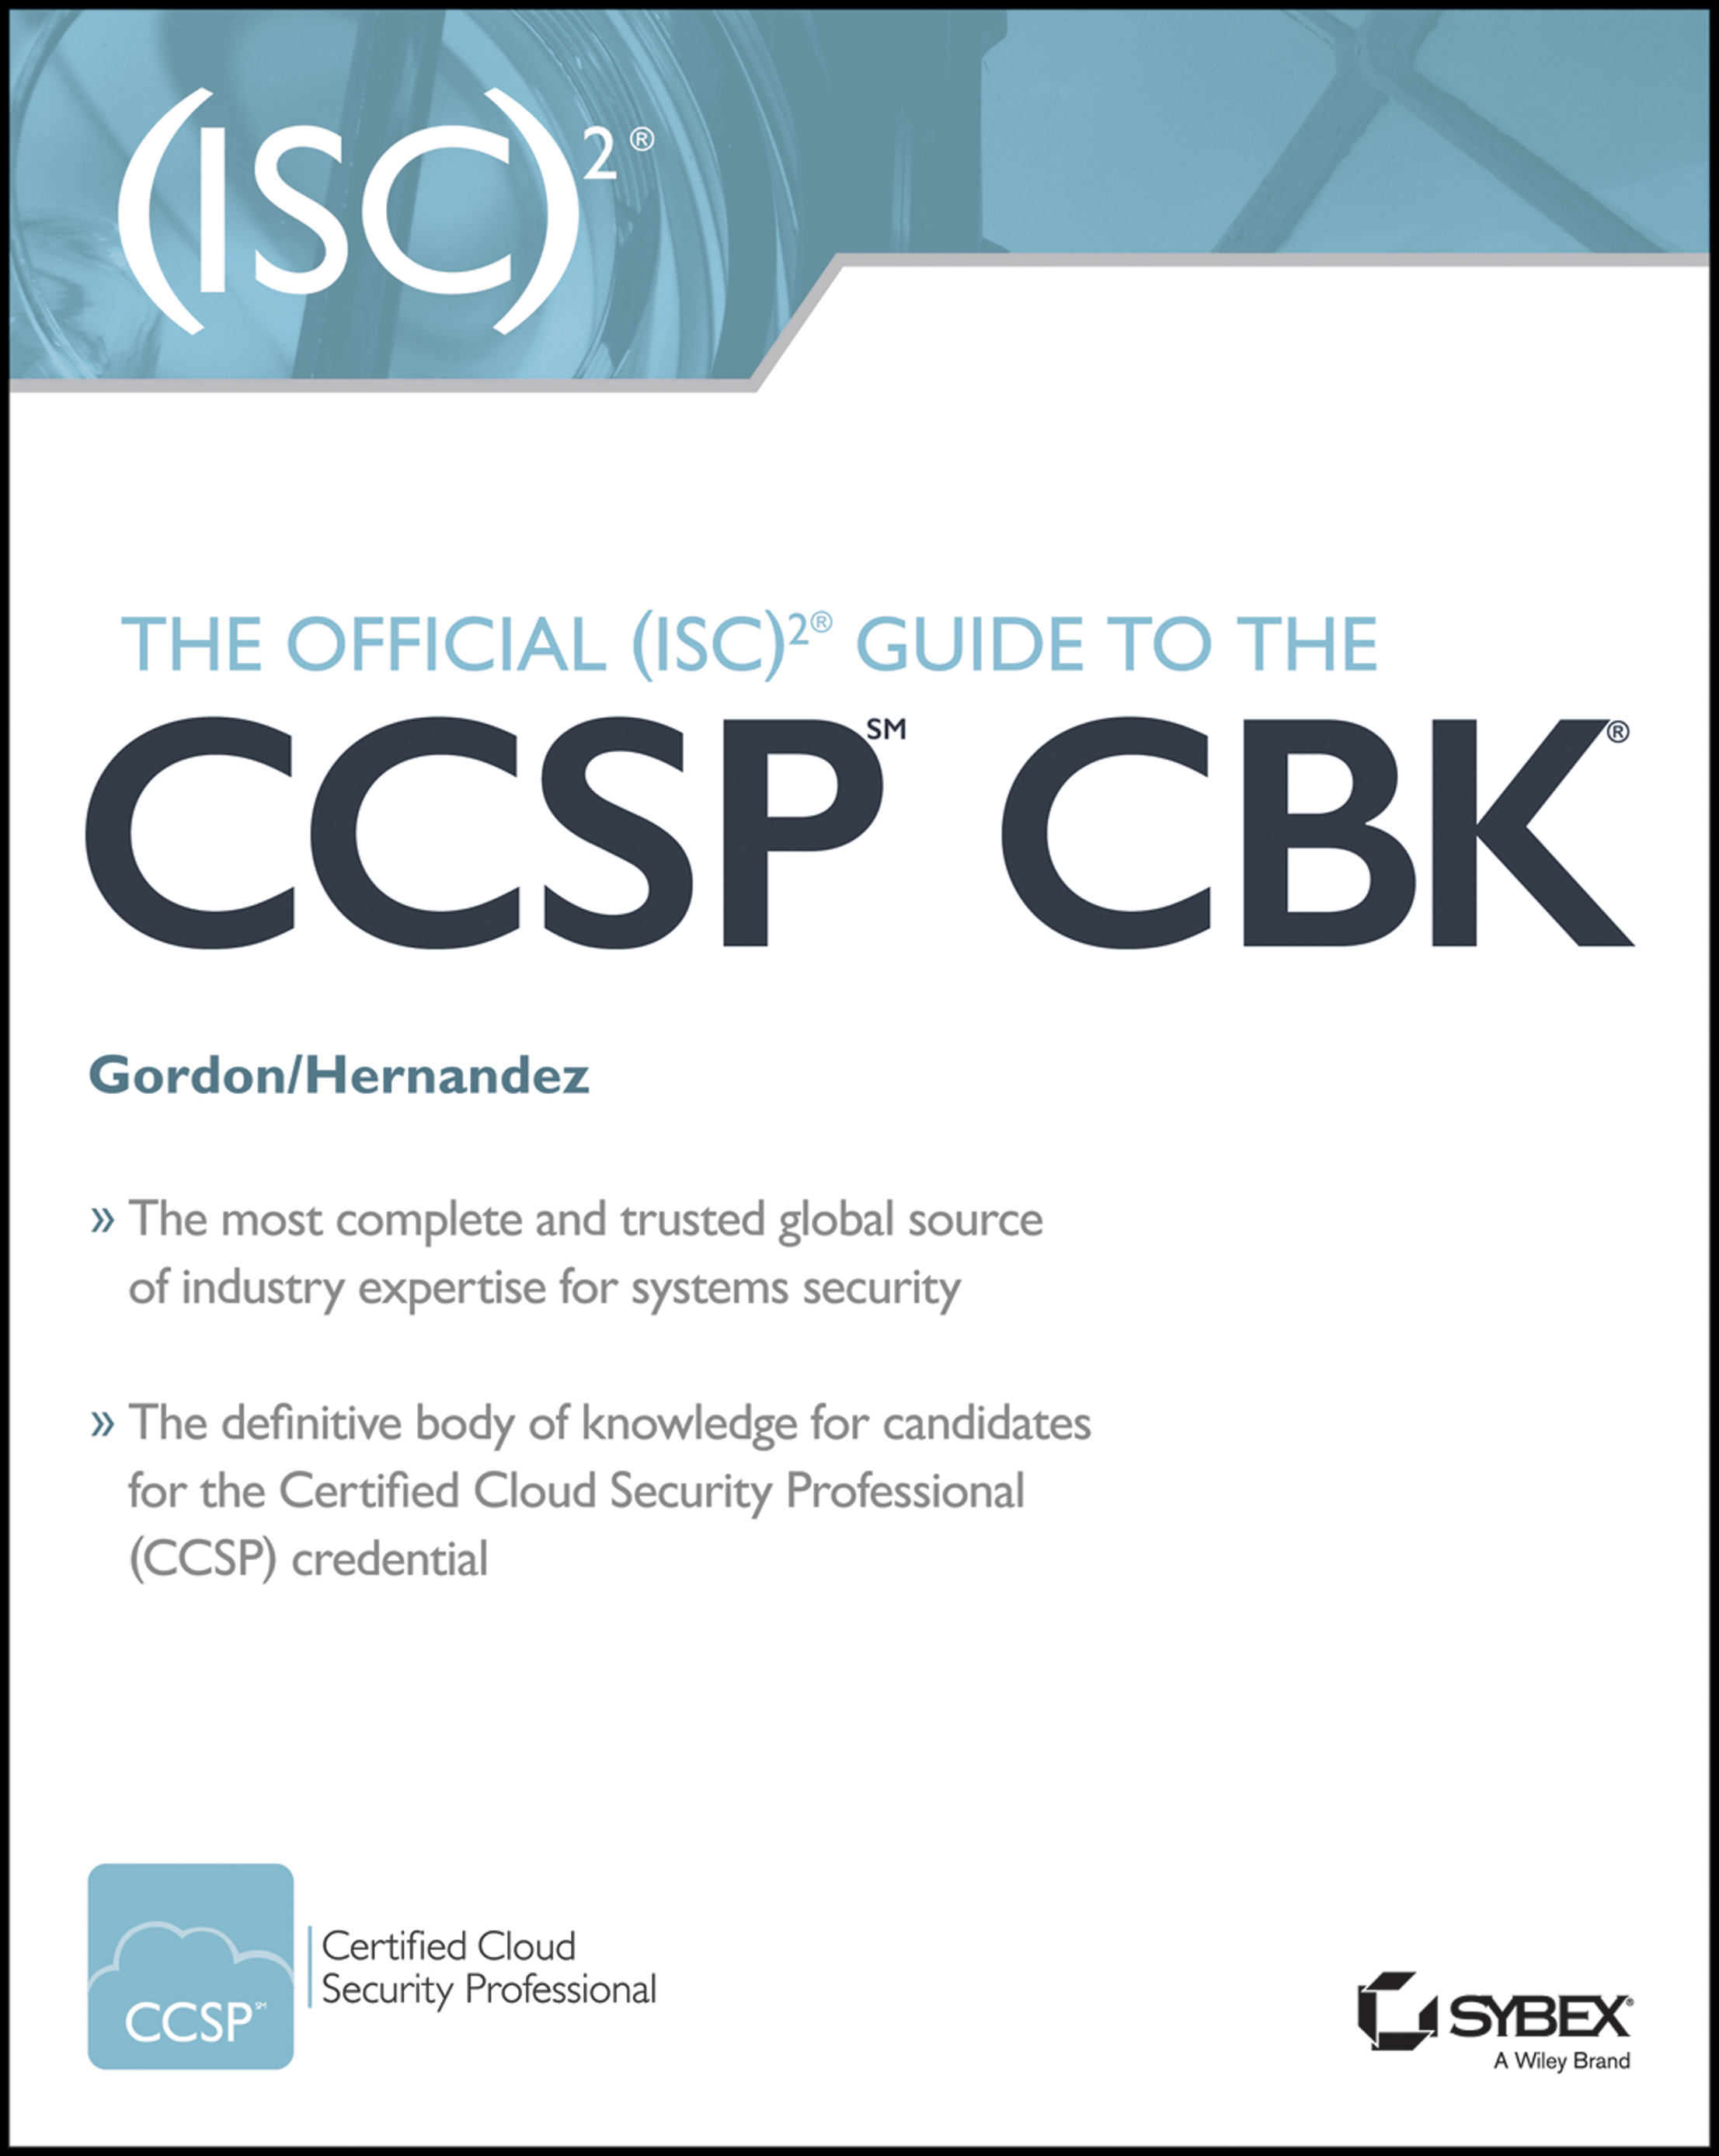 Wiley and isc partner to bring new learning and training the official isc guide to the ccsp cbk xflitez Gallery